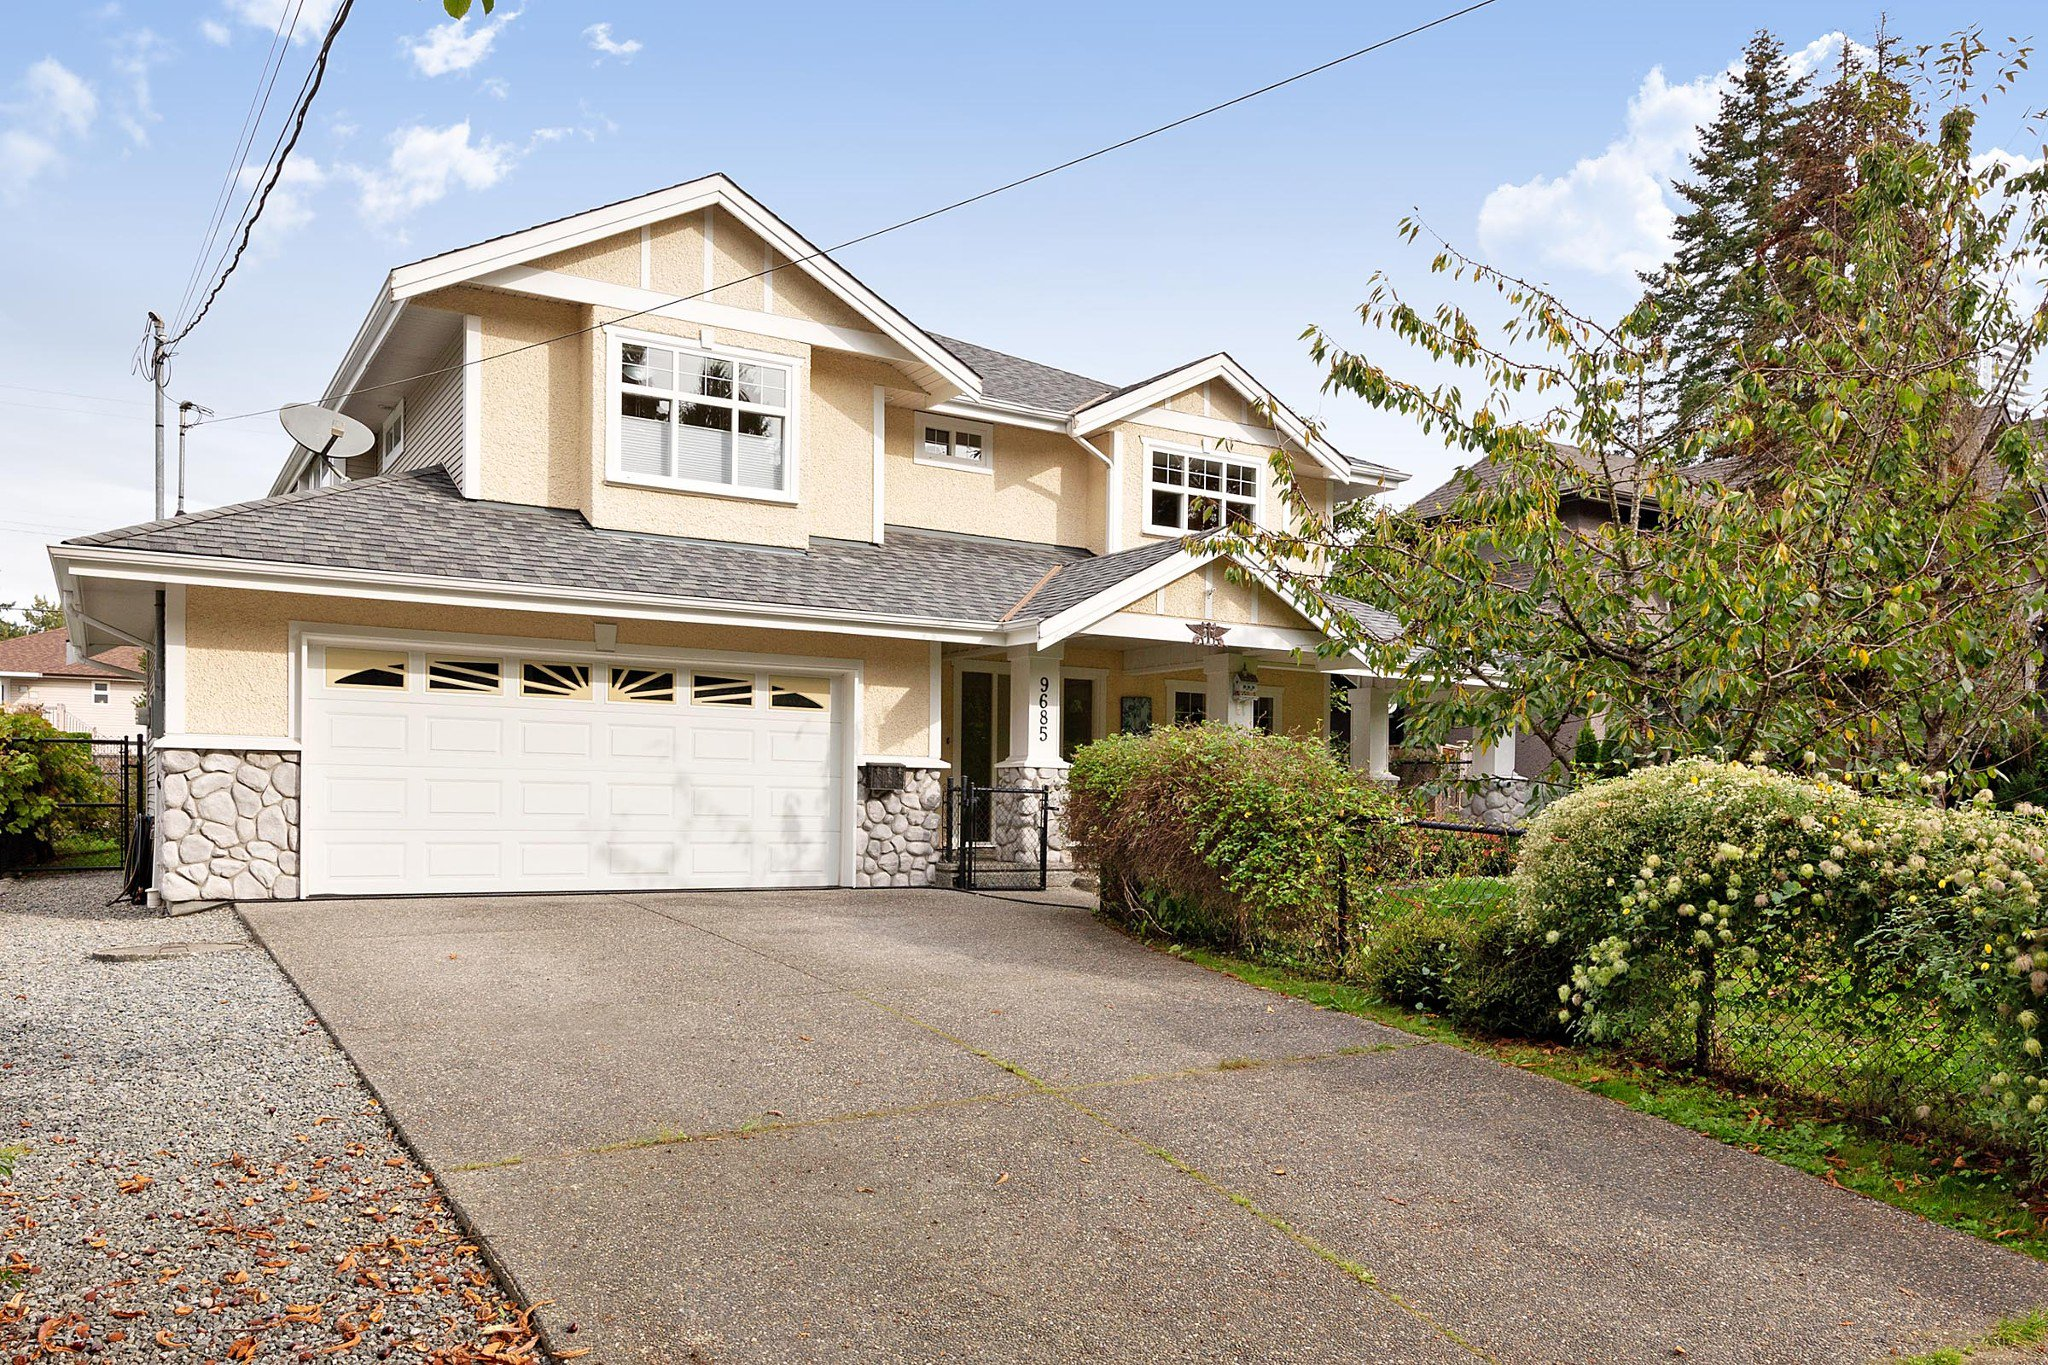 Main Photo: 9685 SULLIVAN Street in Burnaby: Sullivan Heights House for sale (Burnaby North)  : MLS®# R2507211